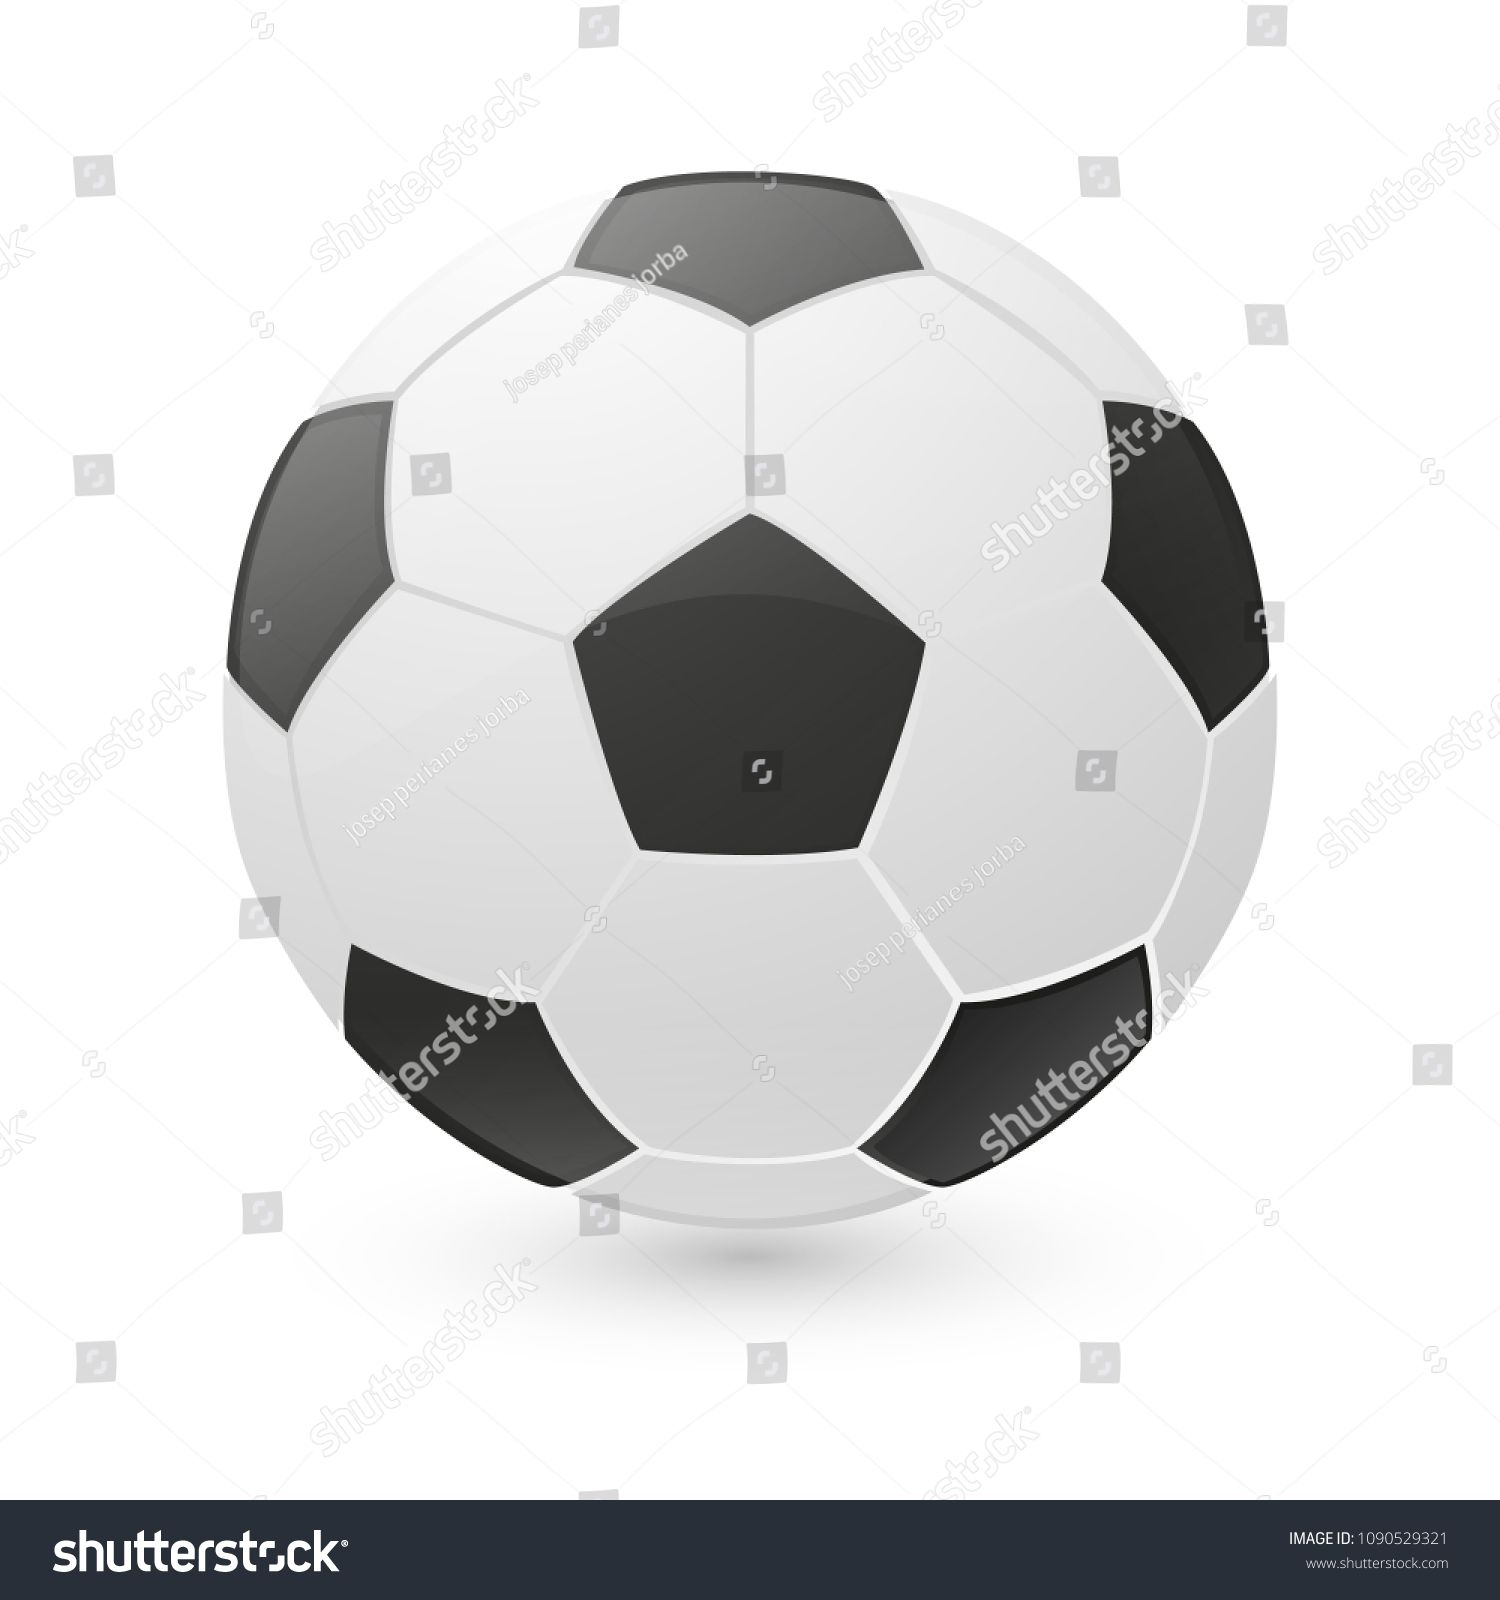 Soccer Football Sport Ball Emoji Icon Object Symbol Gradient Vector Art Design Cartoon Isolated Background Ad Affilia Vector Art Design Sports Balls Soccer